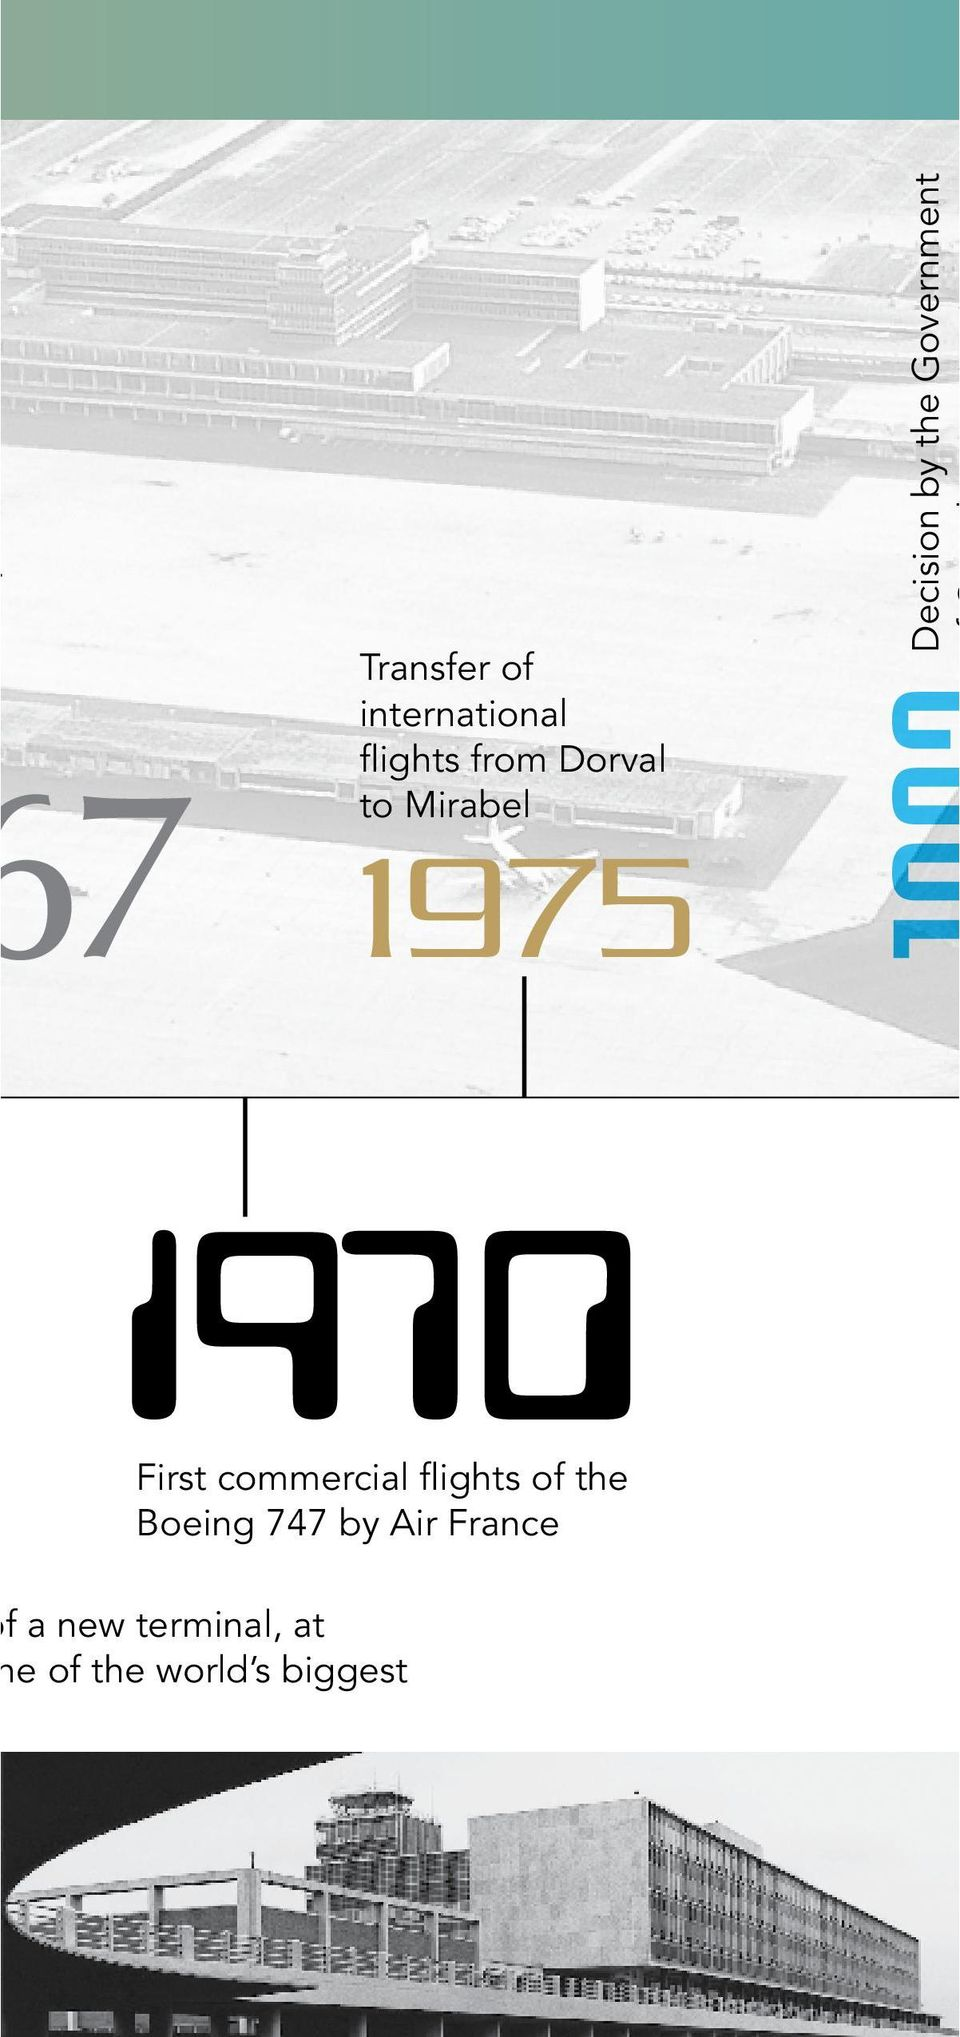 First commercial flights of the Boeing 747 by Air